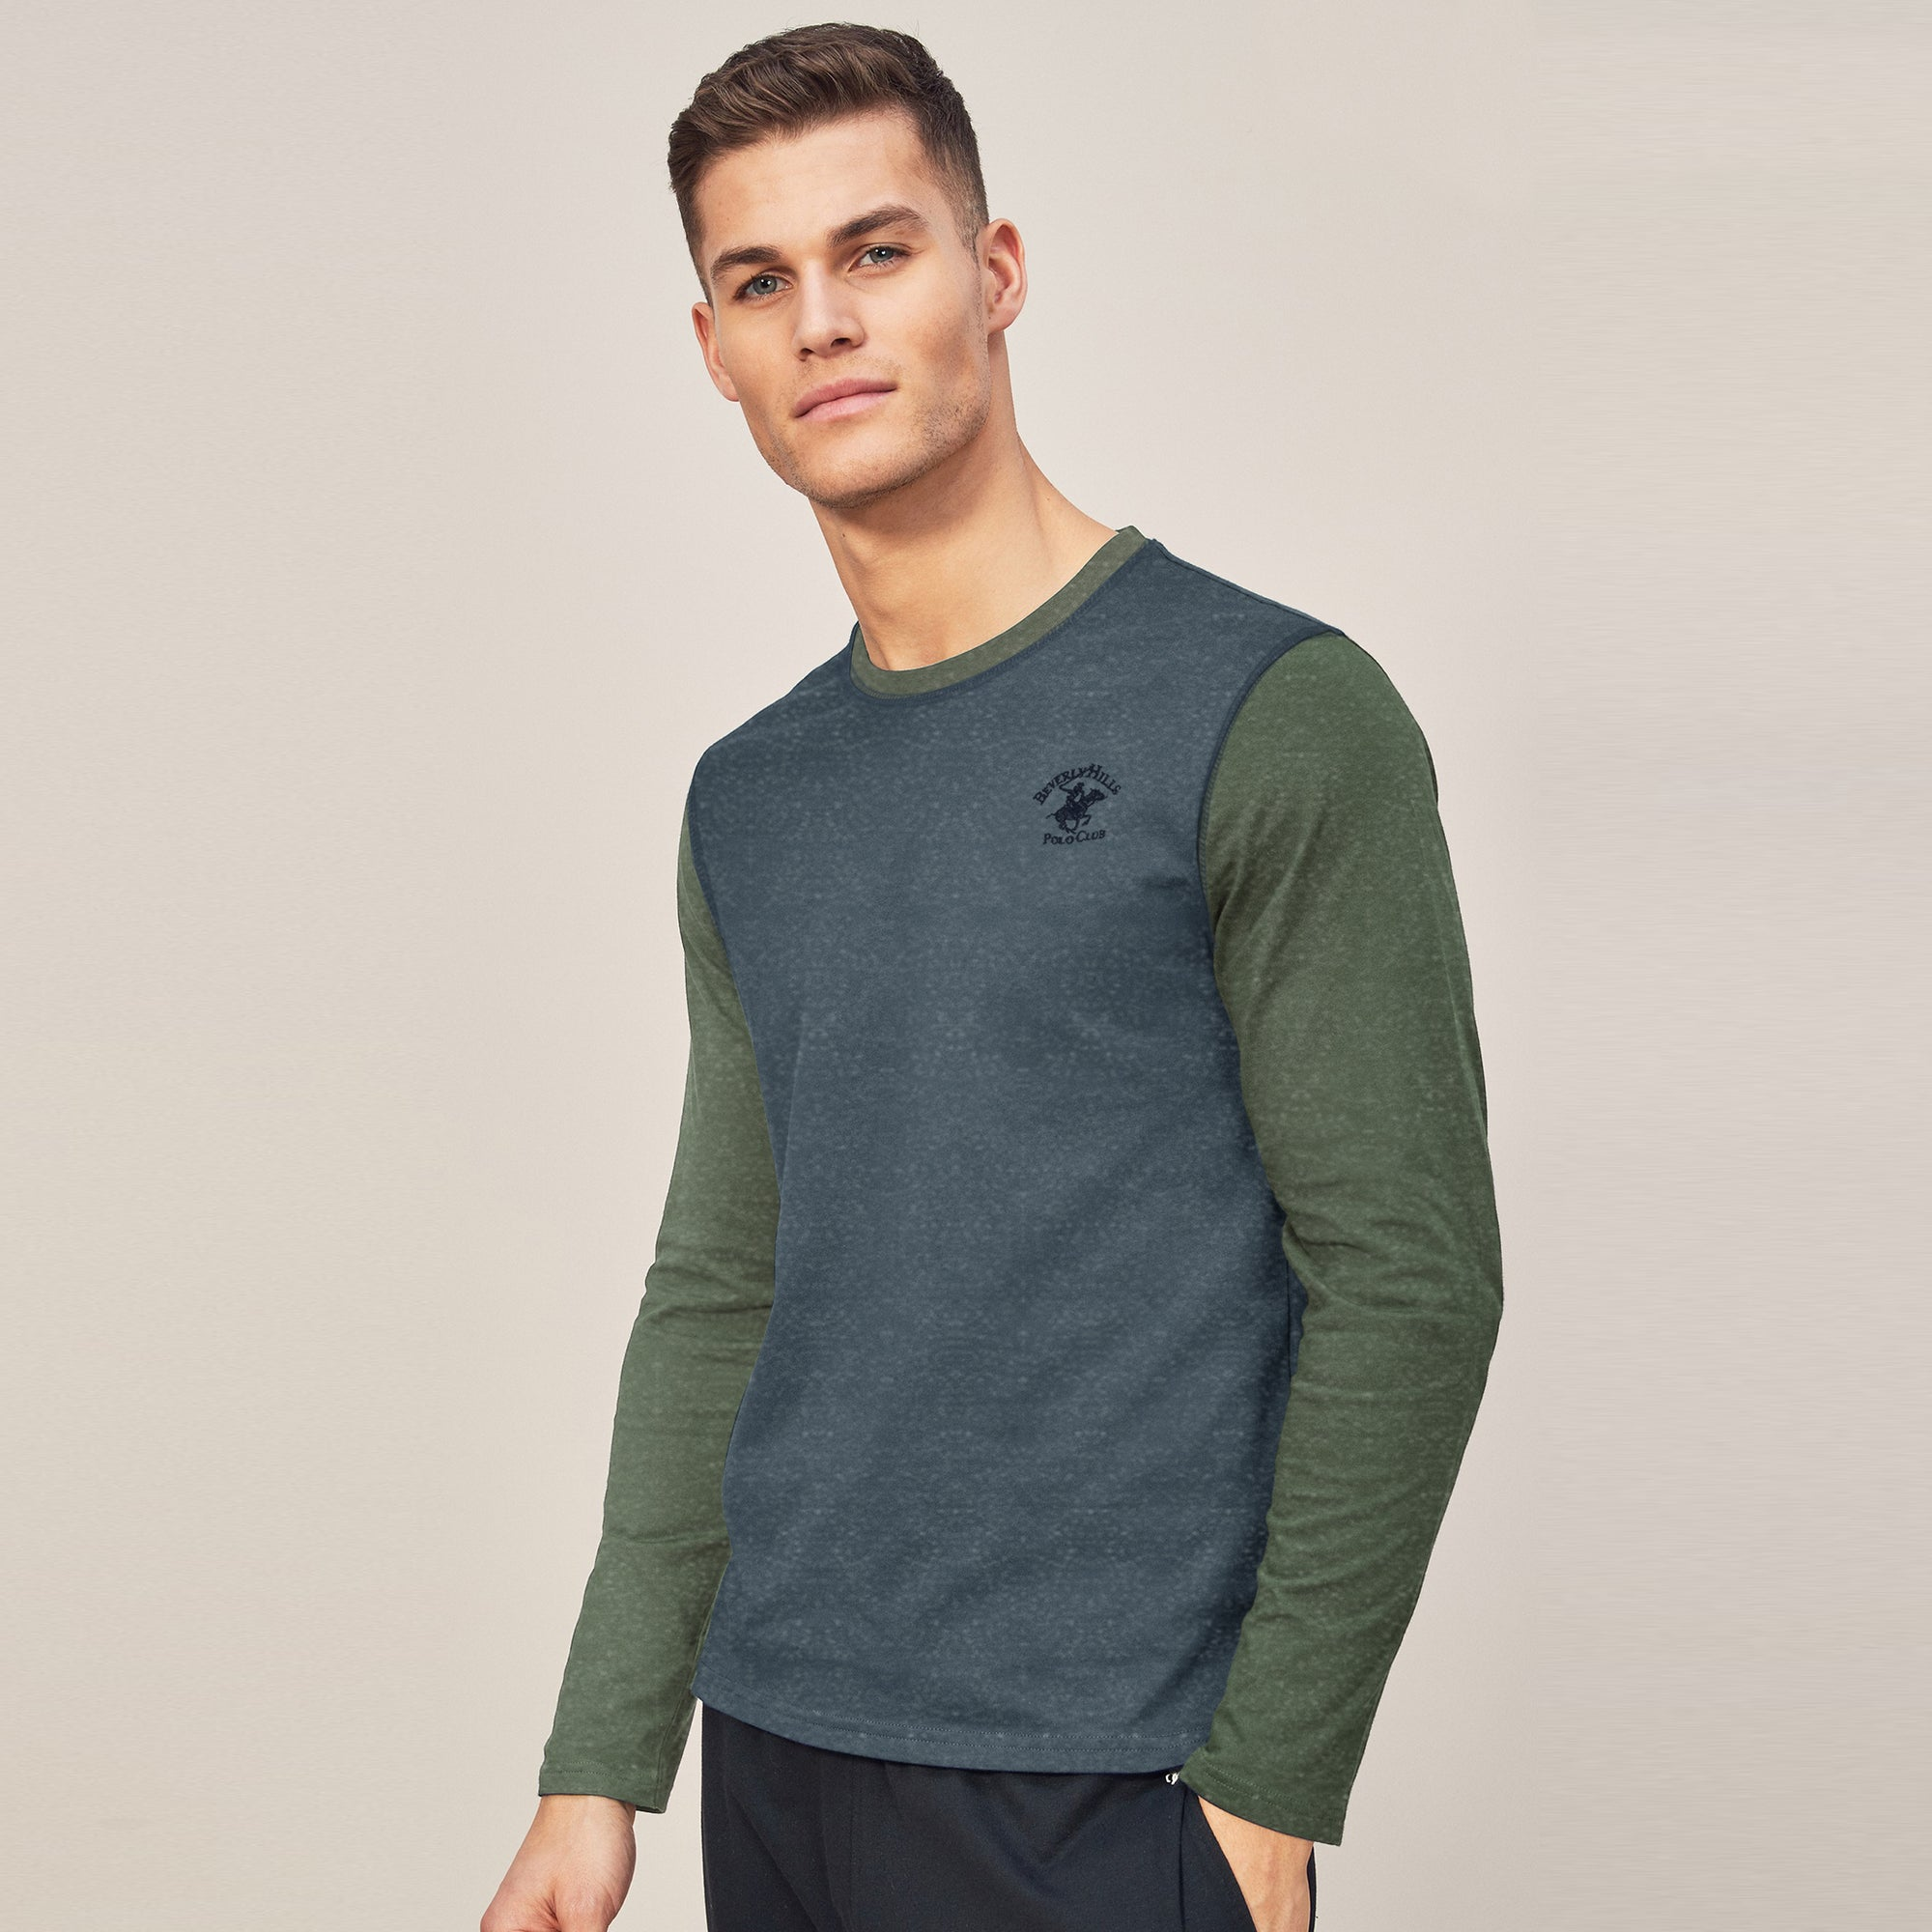 fc4d8cc5 Beverly Hills Polo Club Single Jersey Long Sleeve Tee Shirt For Men-Na -  BrandsEgo